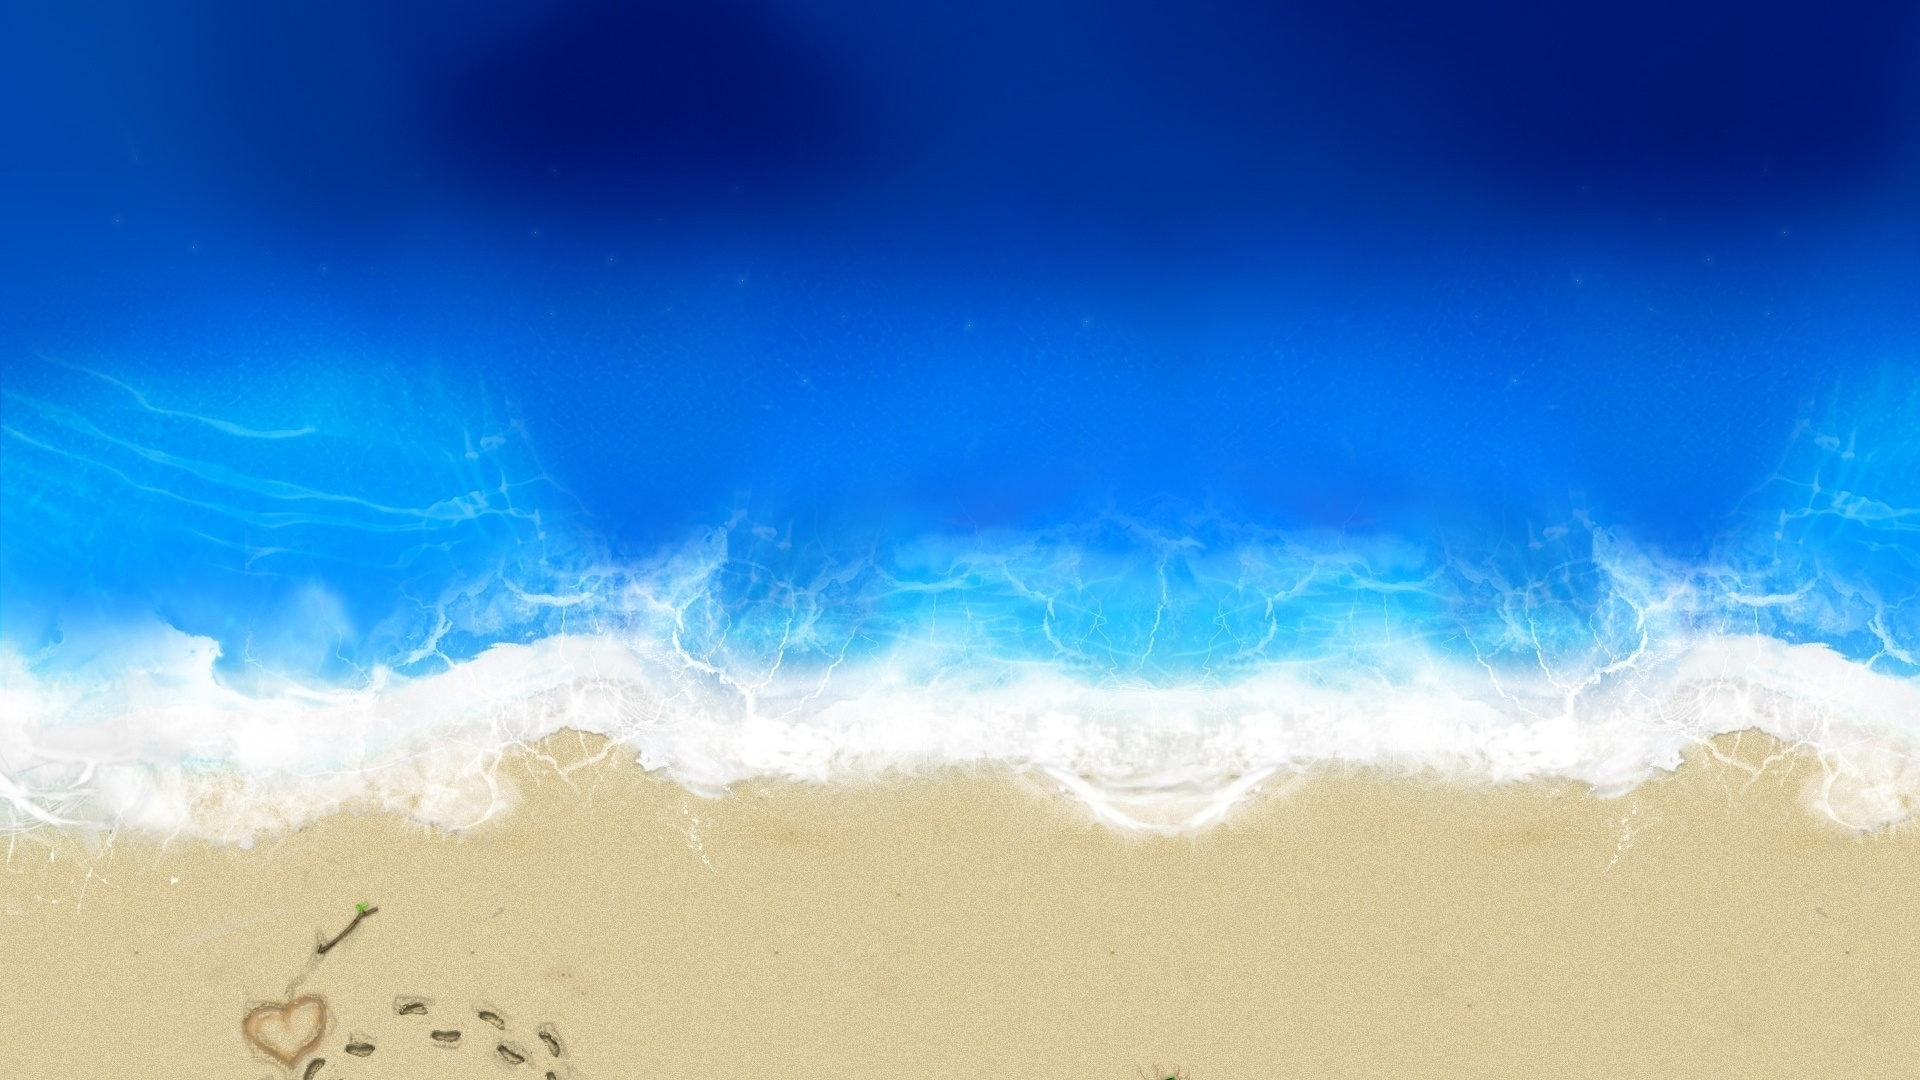 Sea and Sand From Above 1920x1080 wallpaper